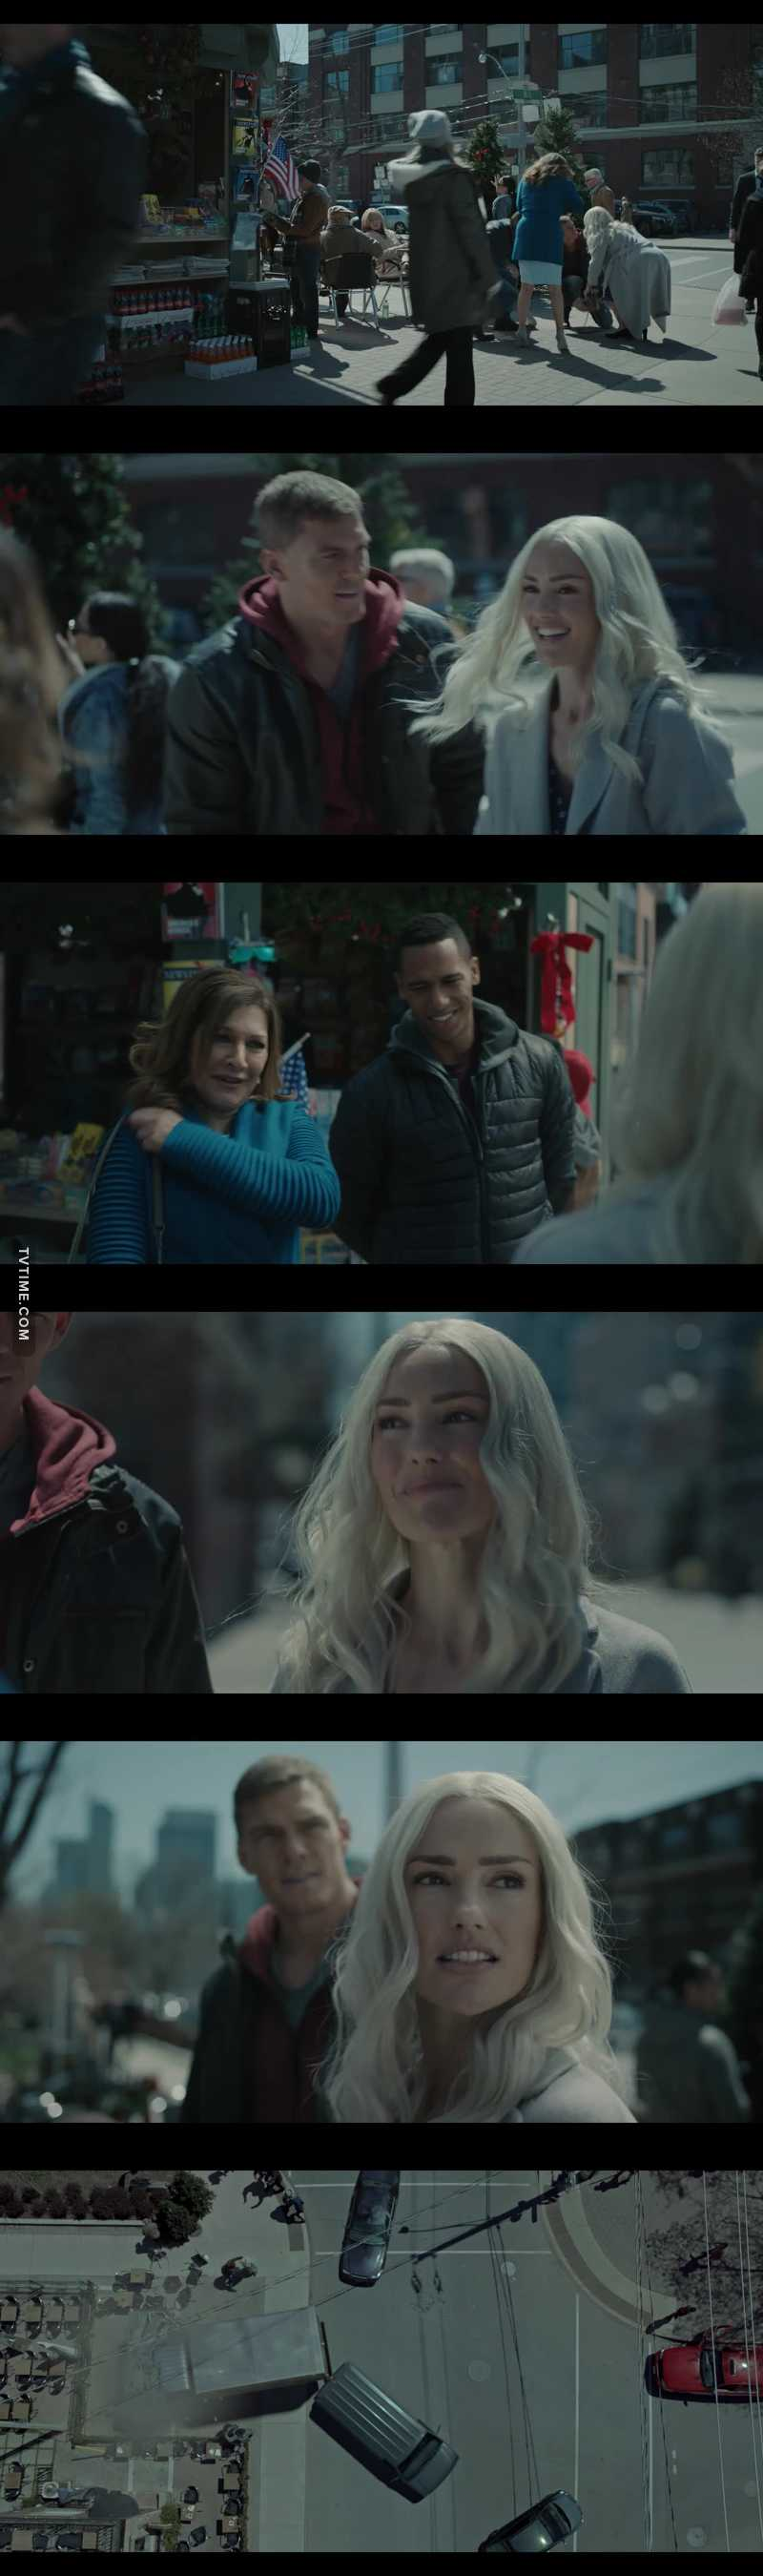 So that's how they met heartbreaking💔 tragedy though... Hank & Dawn which they superhero name now is hawk and Dove    R.I.P. mother and brother